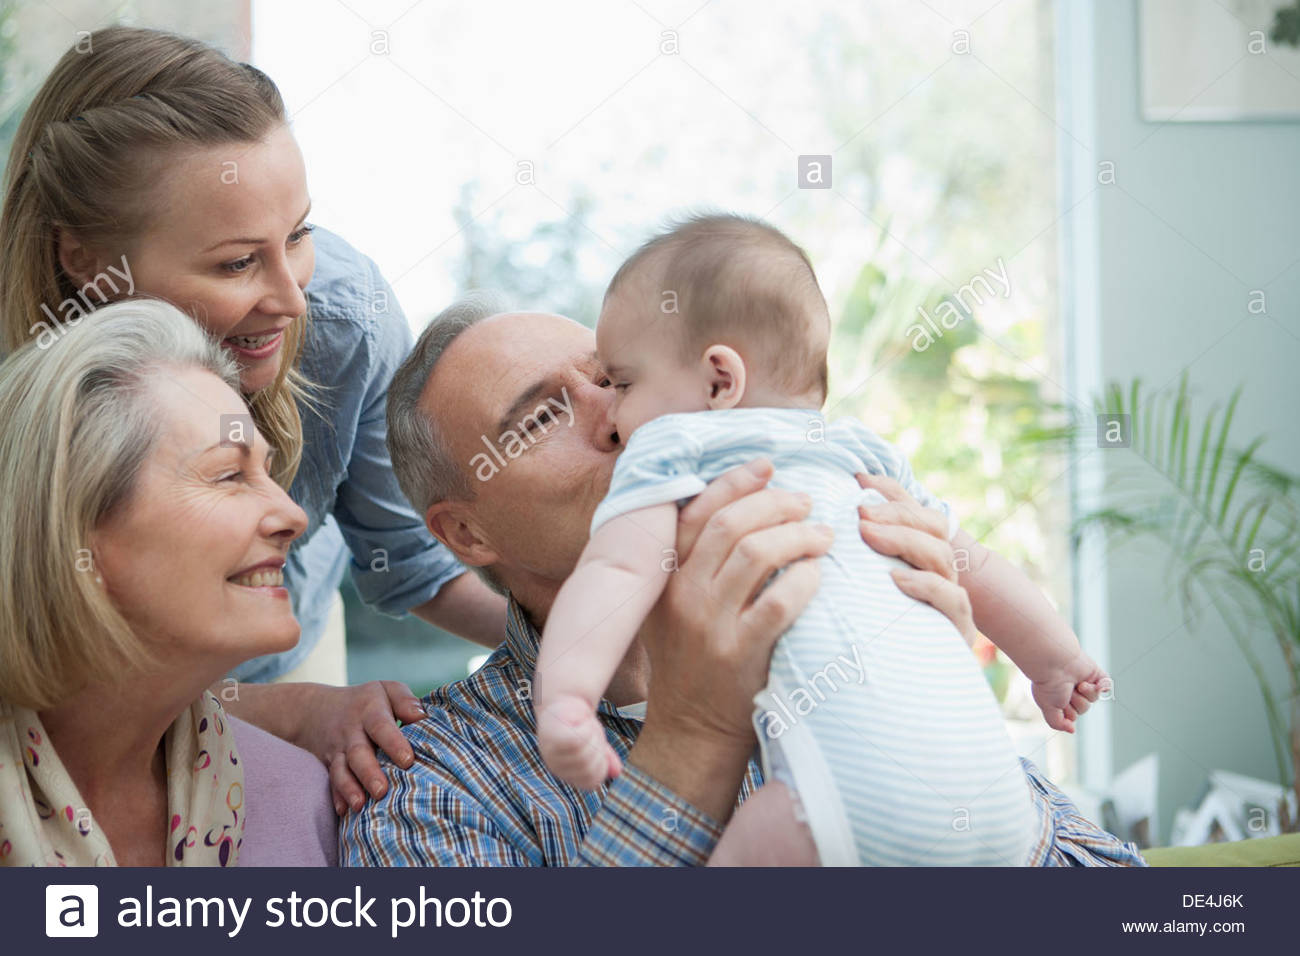 Grandparents and mother with baby boy - Stock Image